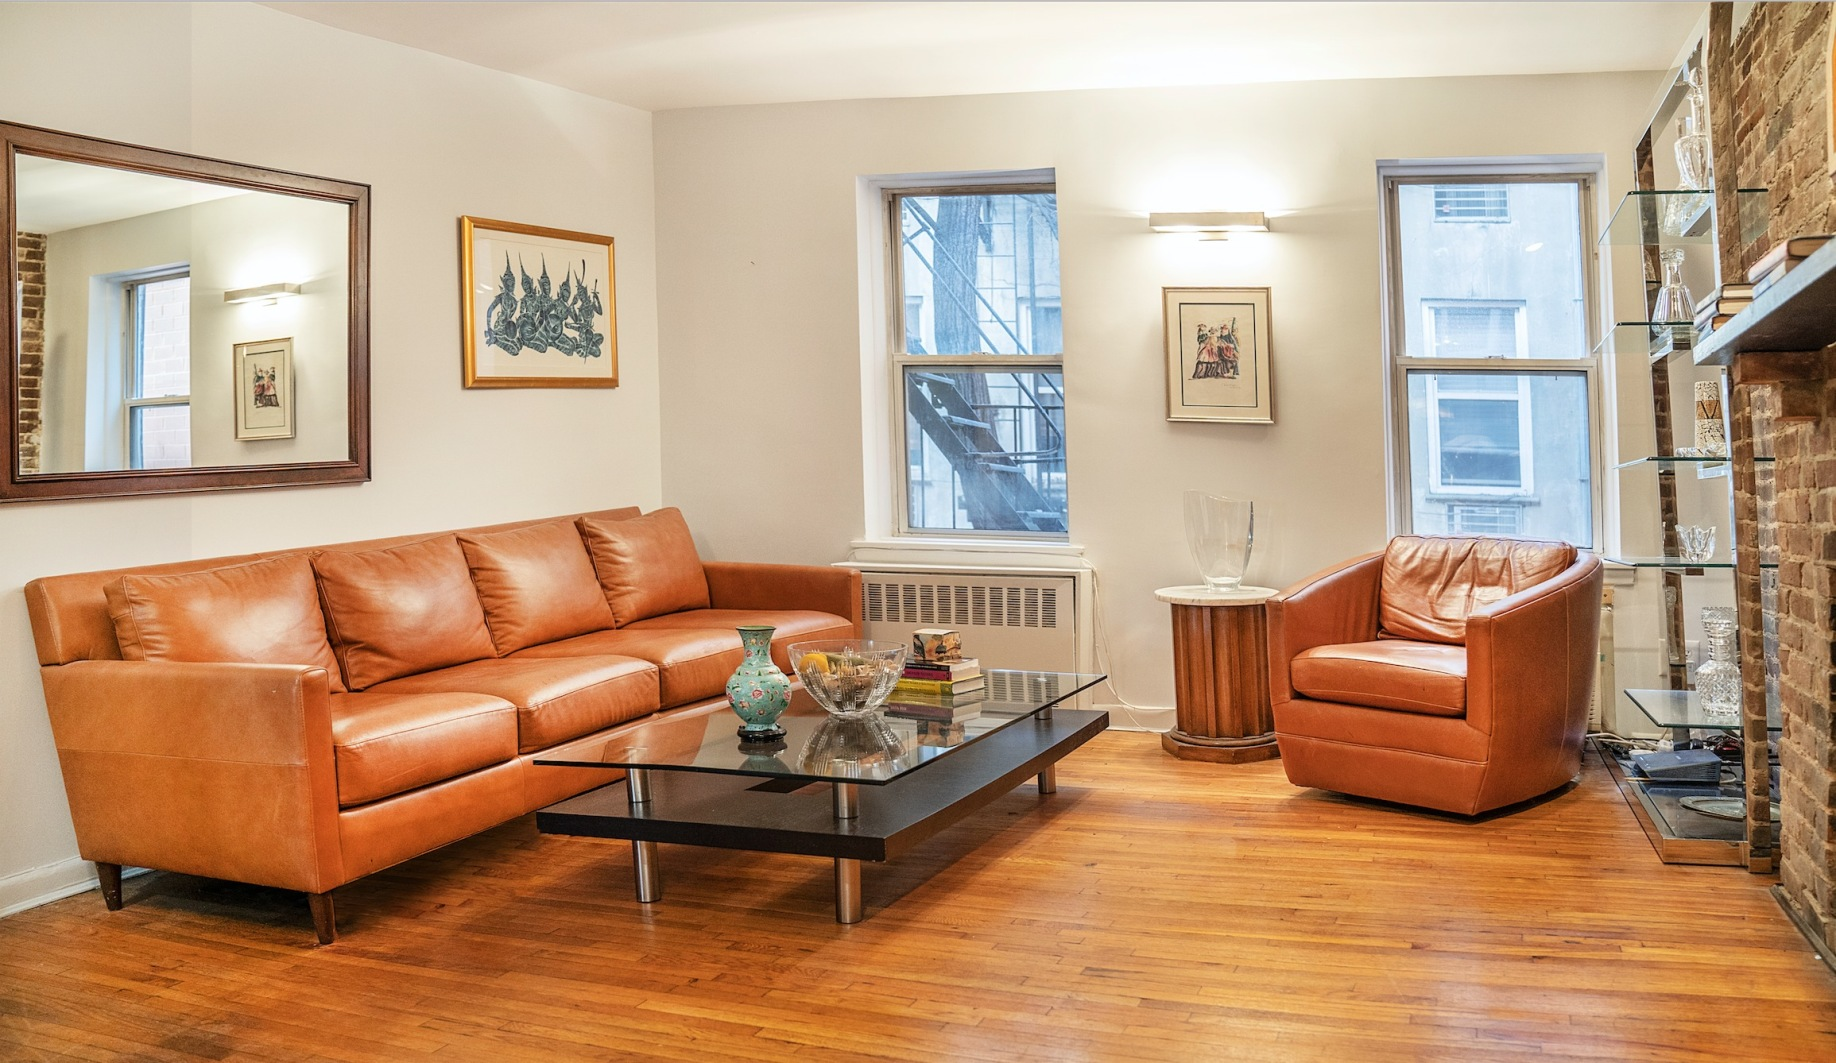 Apartment for sale at 323 East 21st Street, Apt 2-M